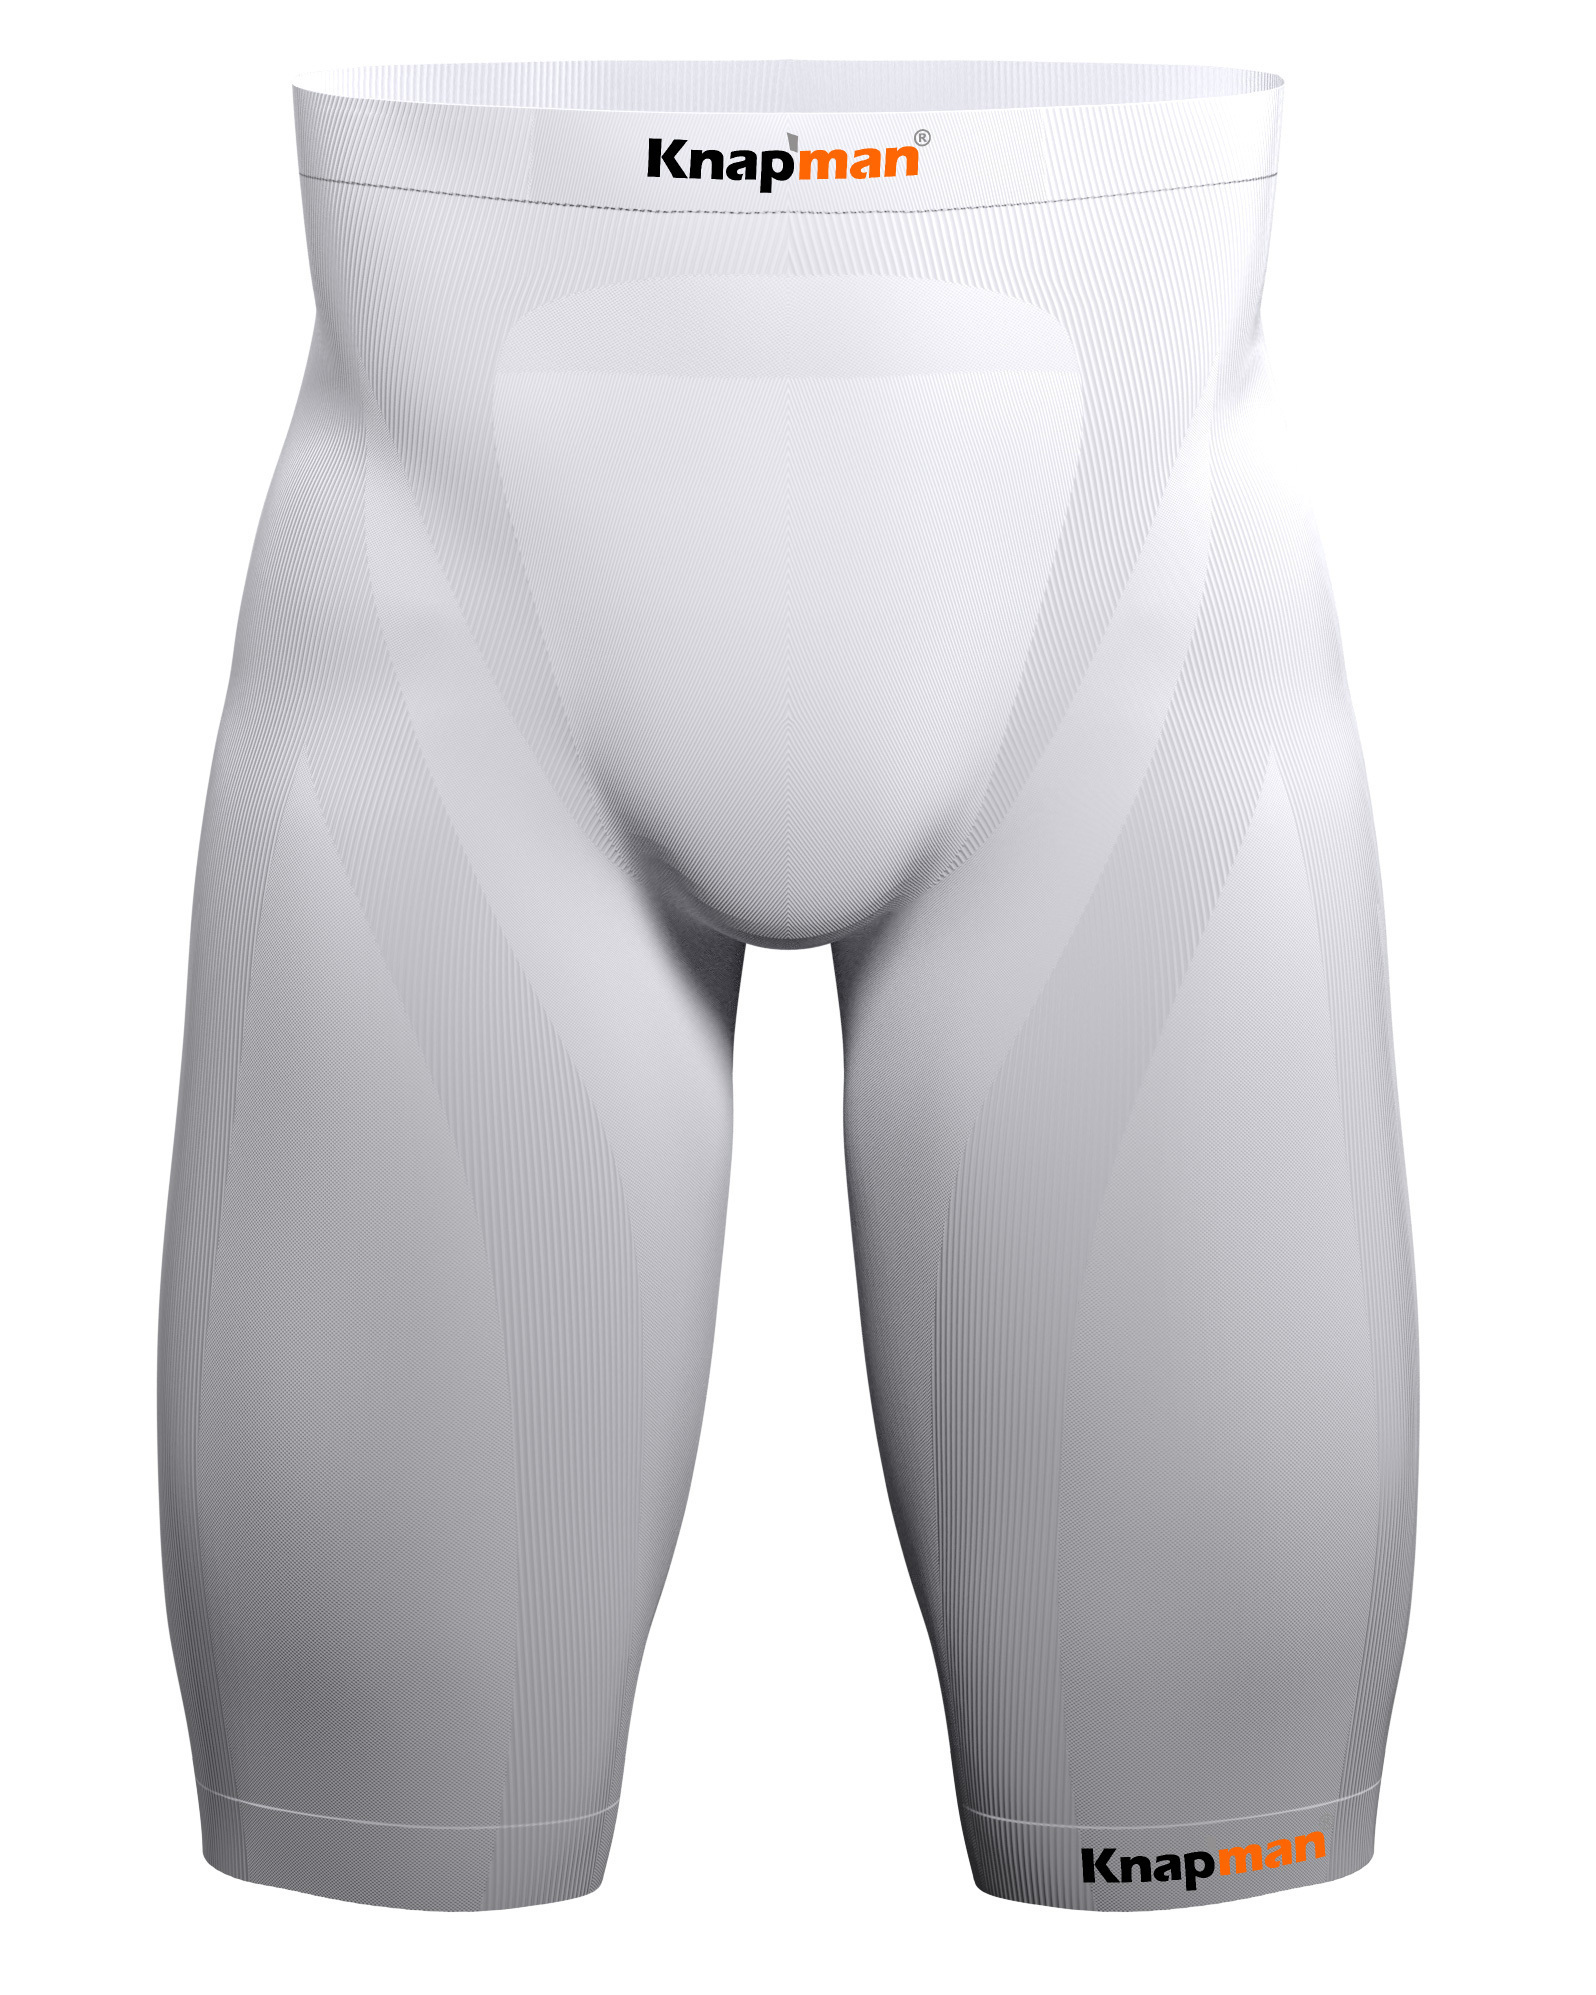 Knap'man Zoned Compression Short USP 25% white